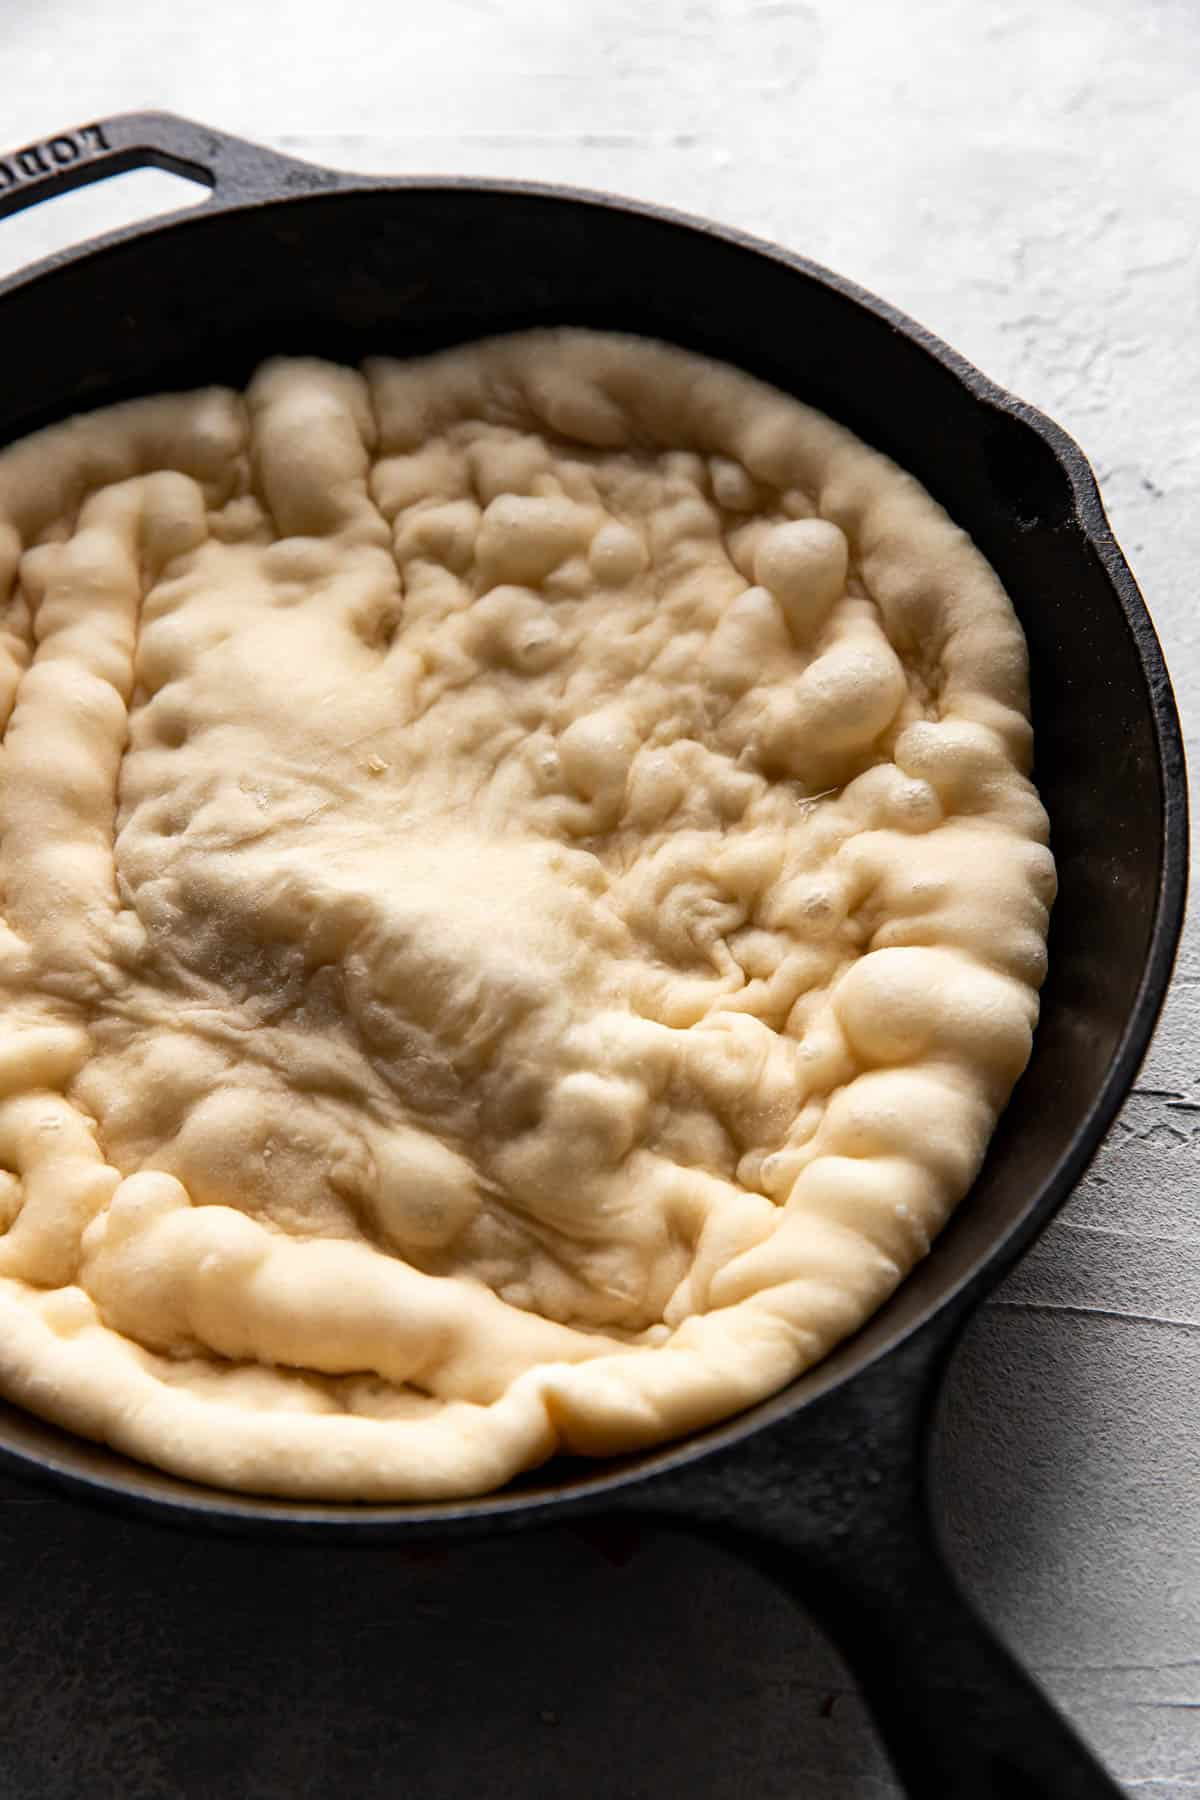 pizza dough in a cast iron skillet.